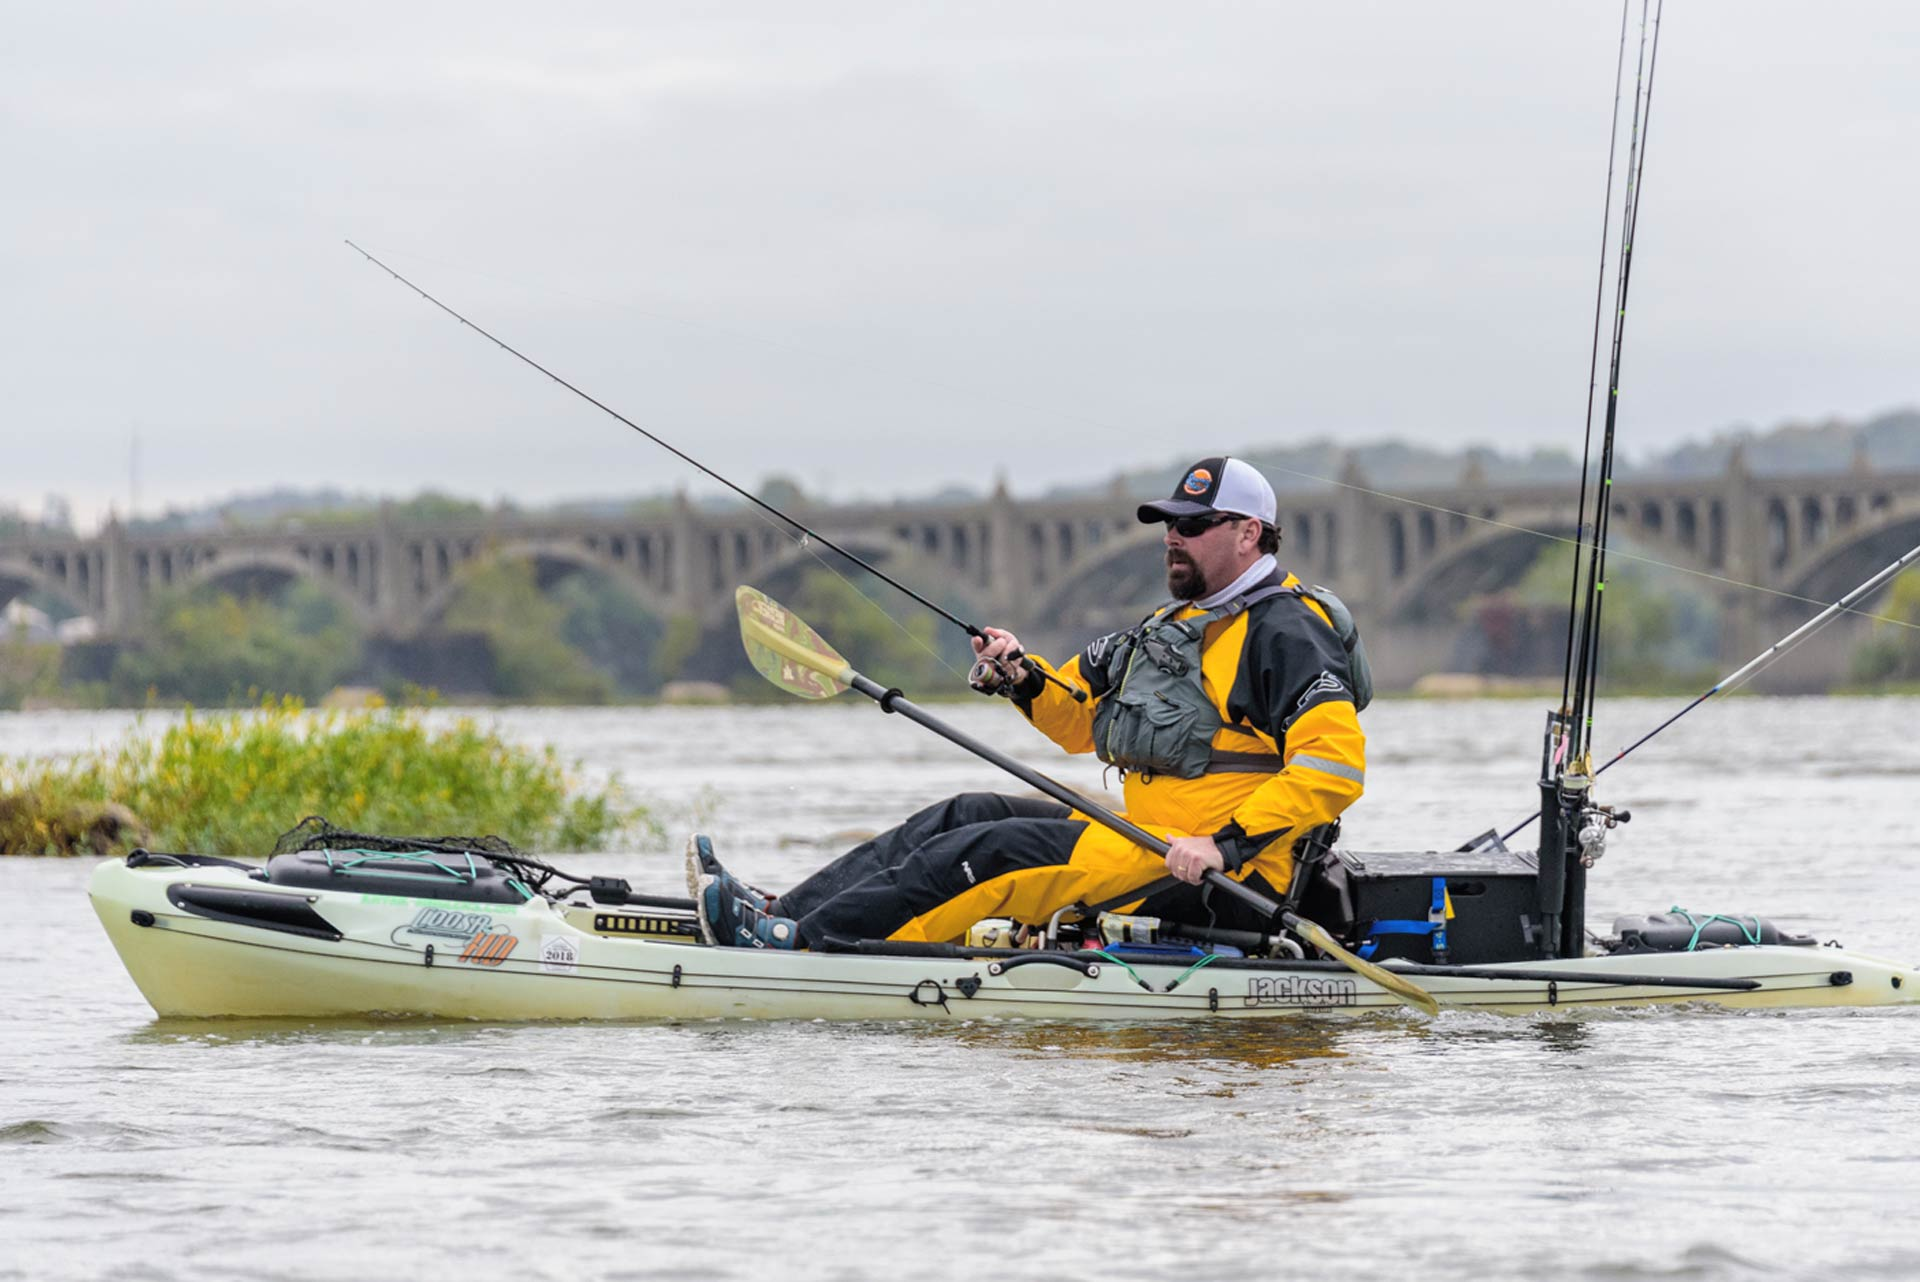 Angler fishing in a drysuit in his kayak